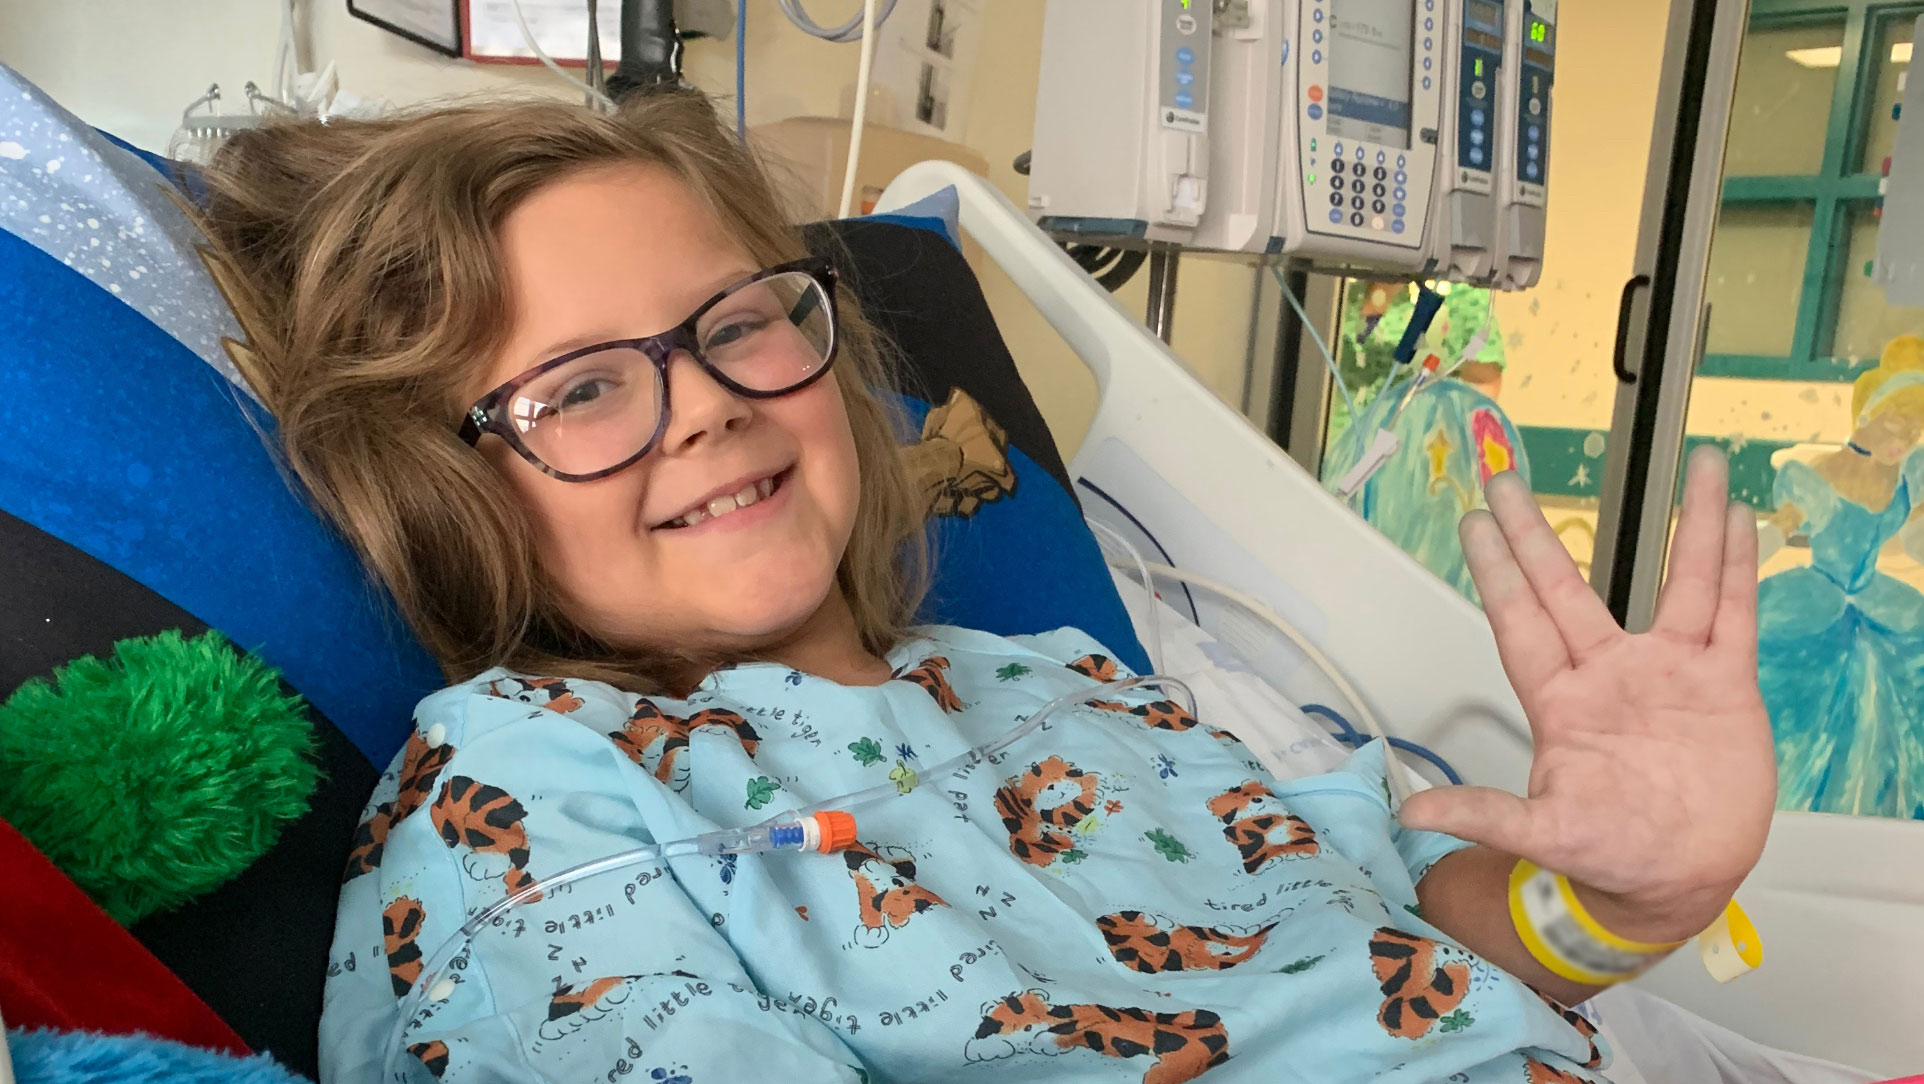 """A close-up photo of Ellie laying in her hospital bed smiling at the camera while giving the Star Trek """"live long and prosper"""" hand symbol for the photo. She is wearing a blue gown with cartoon tigers on it."""